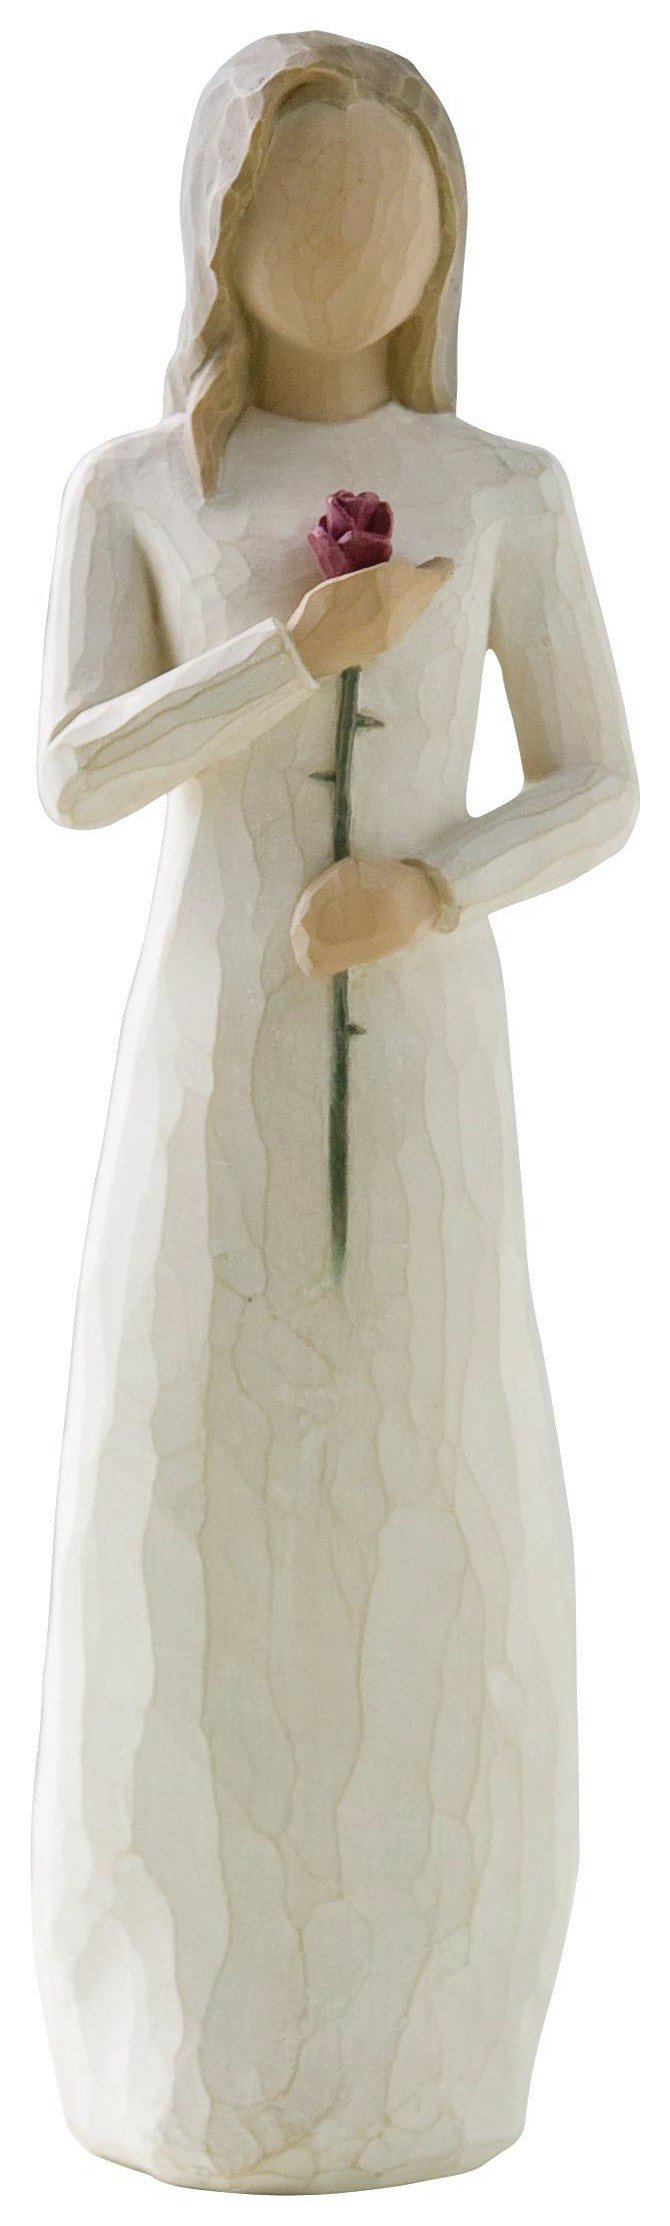 Willow Tree - Love - Figurine lowest price